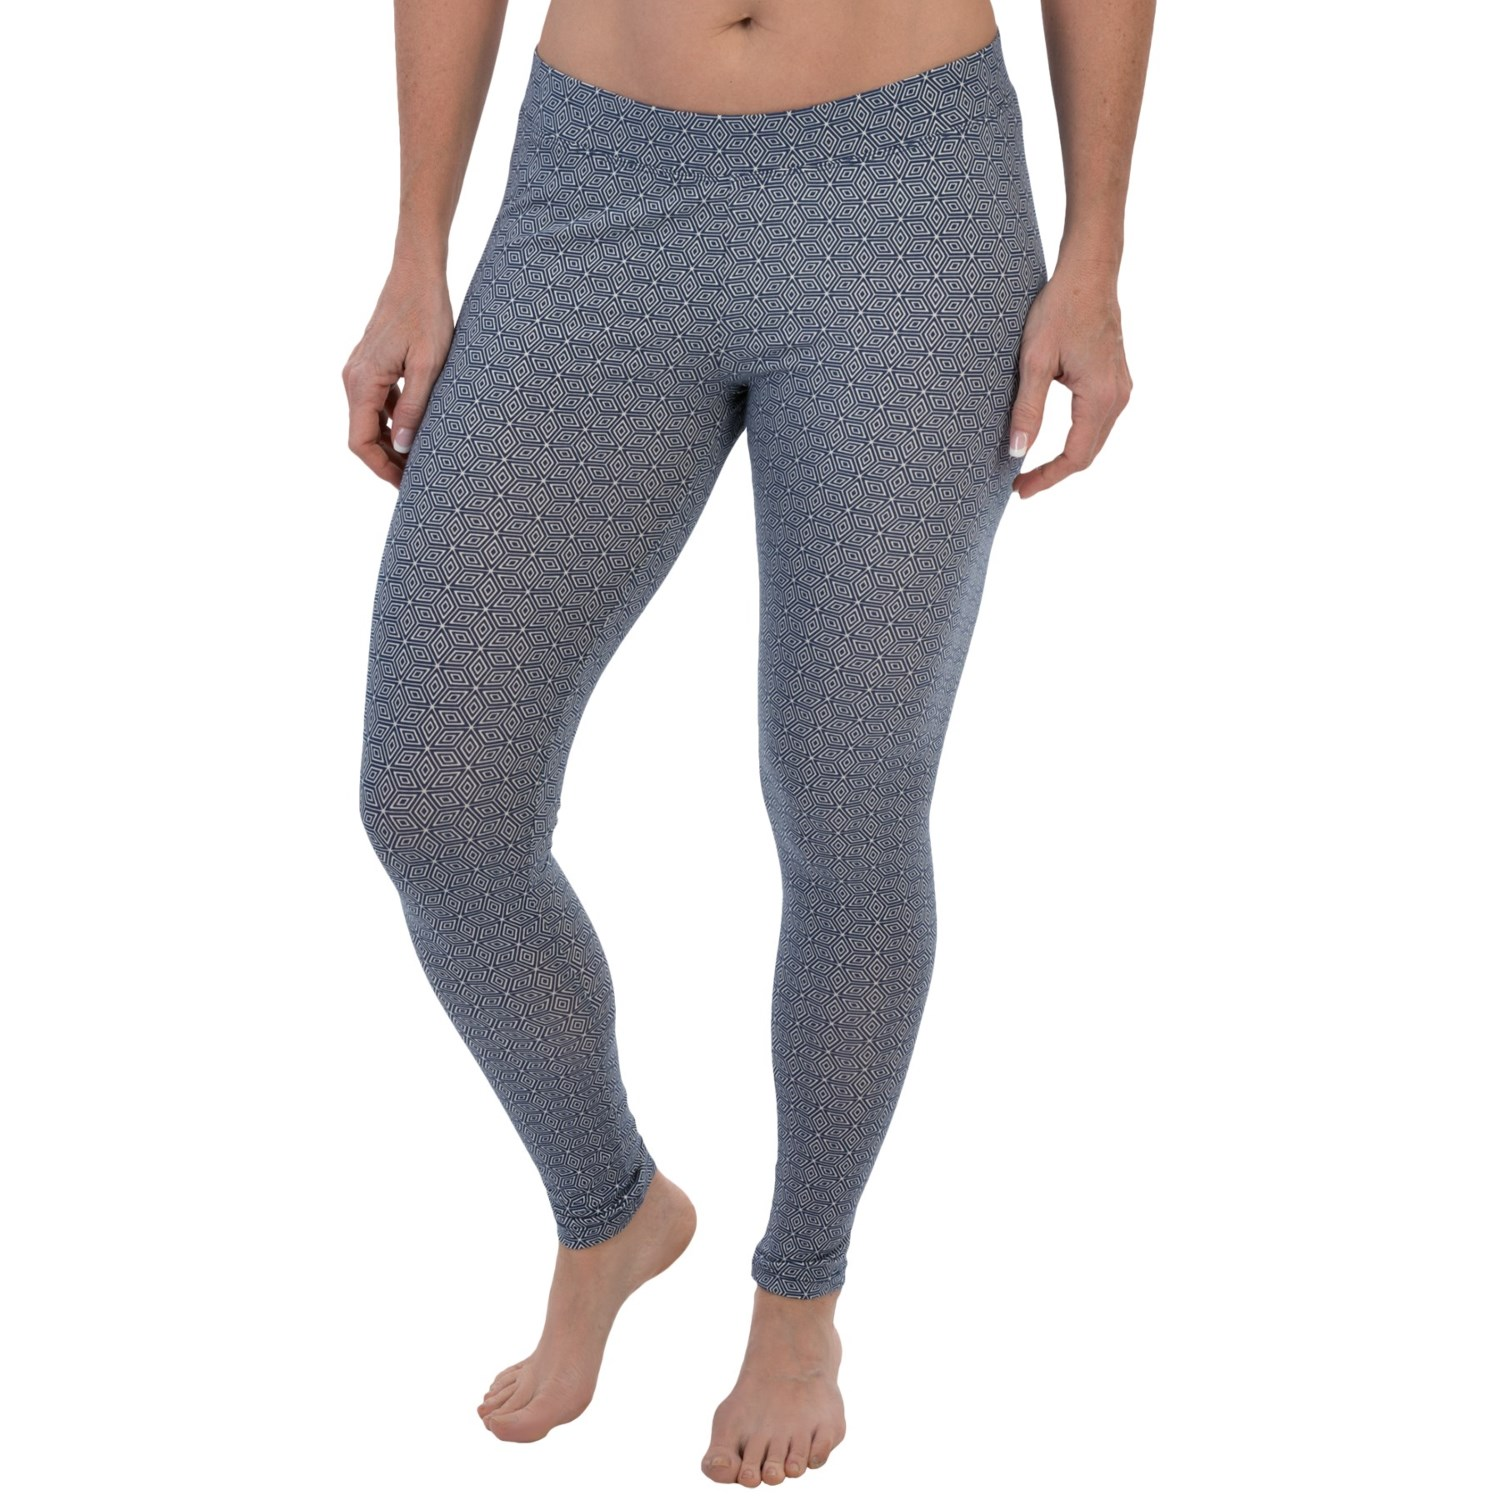 Shop HUE Cotton Leggings for a must have staple item in your wardrobe. Our cotton leggings coordinate easily with any top or tunic heels or flats. Free shipping on orders of $85 or more. All day. Every day. Menu. Women. Shop Leggings Women. Shop Leggings%(16).